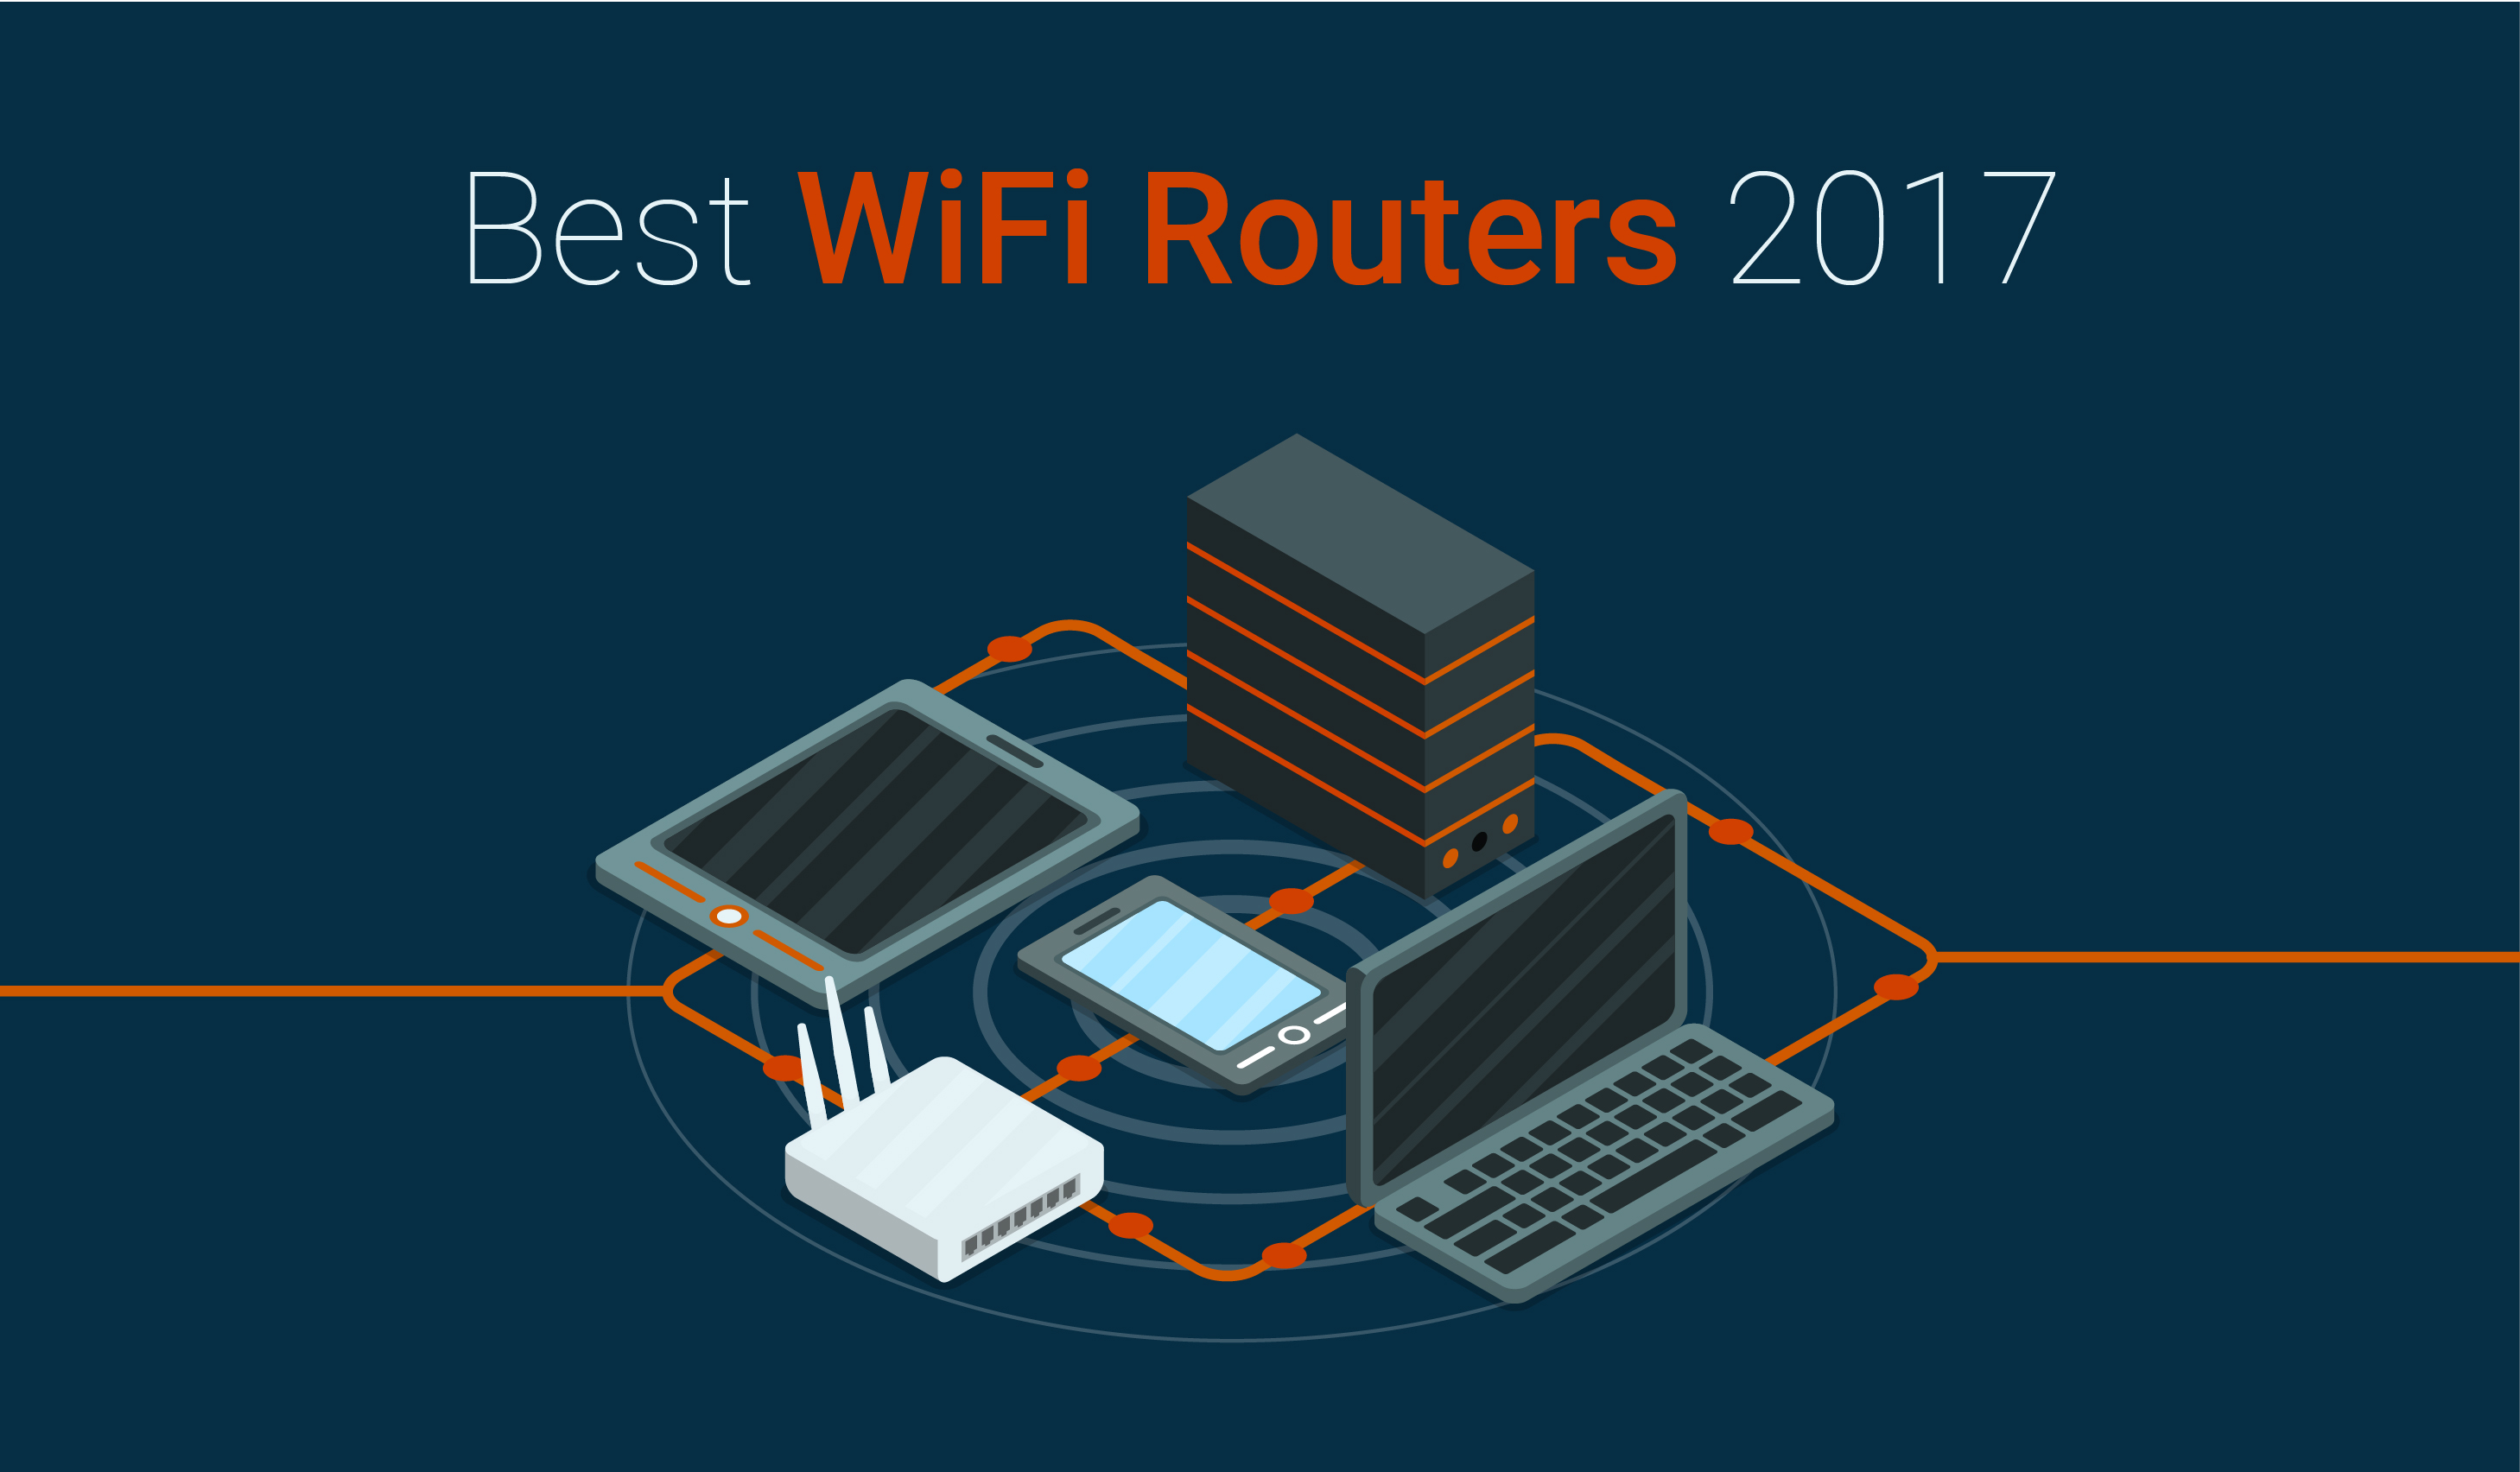 Best WiFi Routers 2017